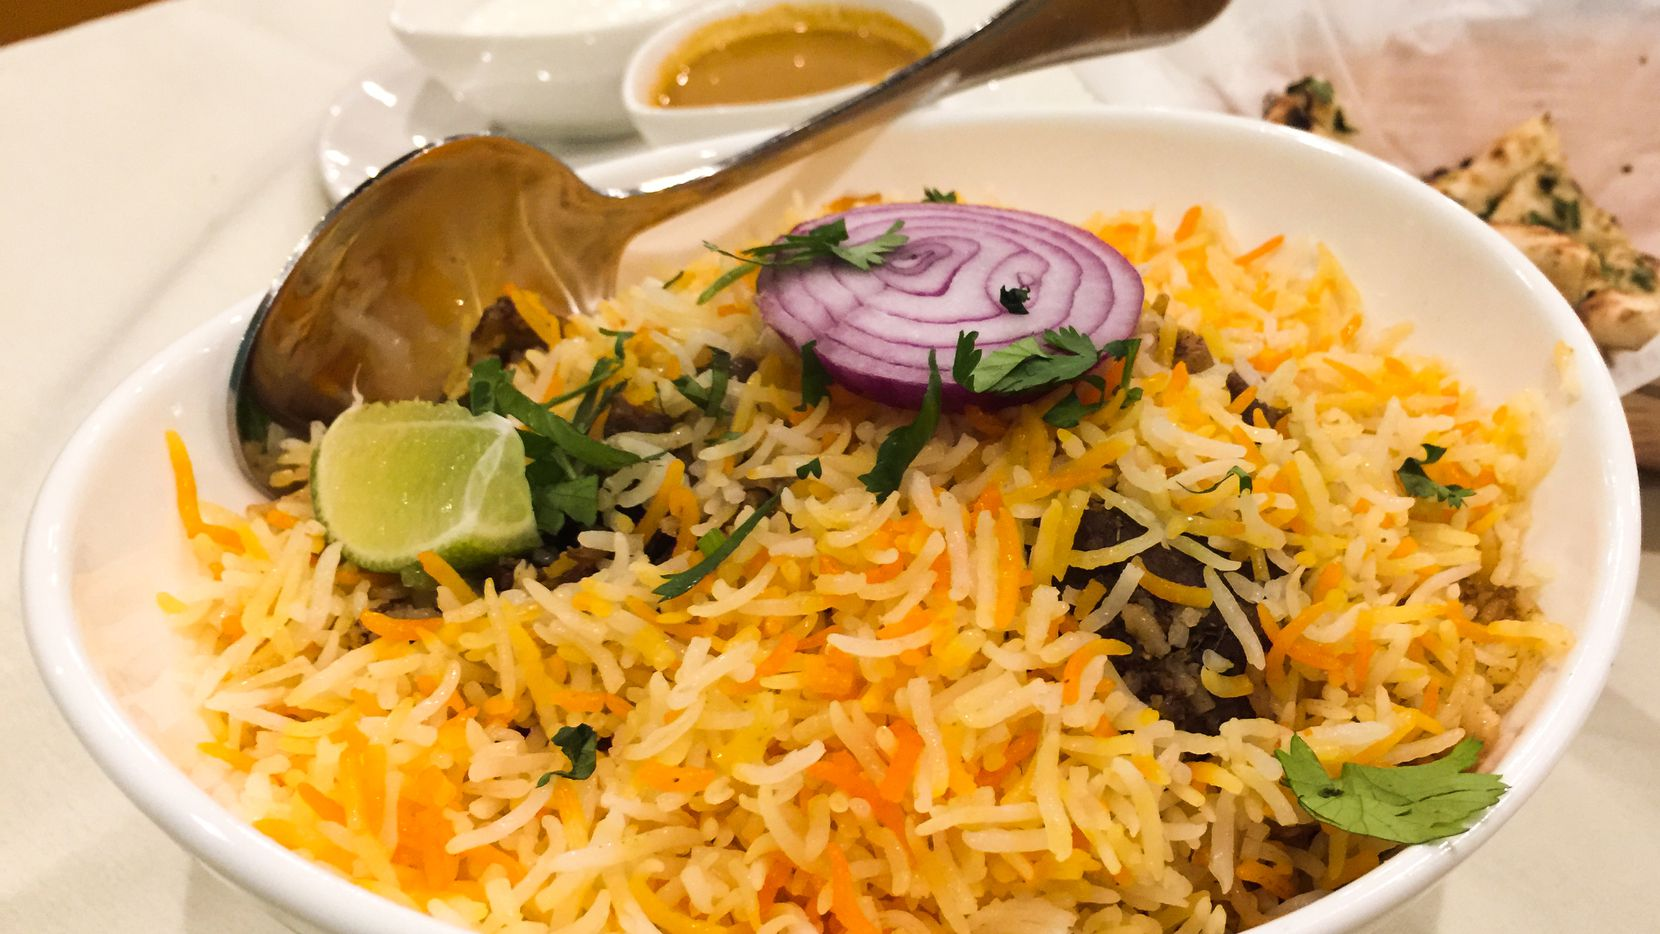 Goat biryani – an Indian layered rice dish – at Touch Nine in Irving. With explosive grown in North Texas' Asian Indian immigrant population comes a plethora of new Indian restaurants.